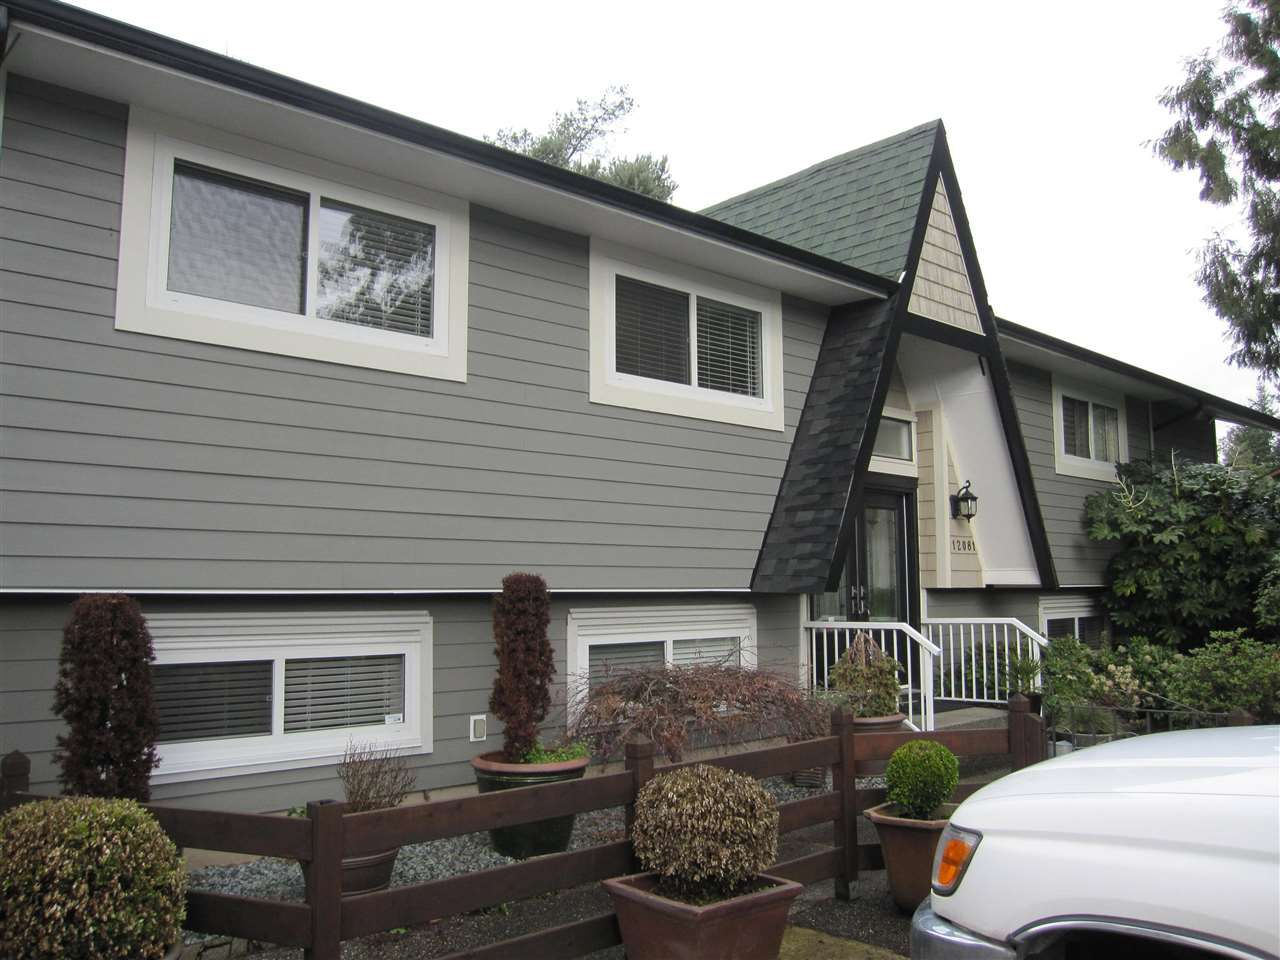 Main Photo: 12081 GREENWELL Street in Maple Ridge: East Central House for sale : MLS®# R2049109